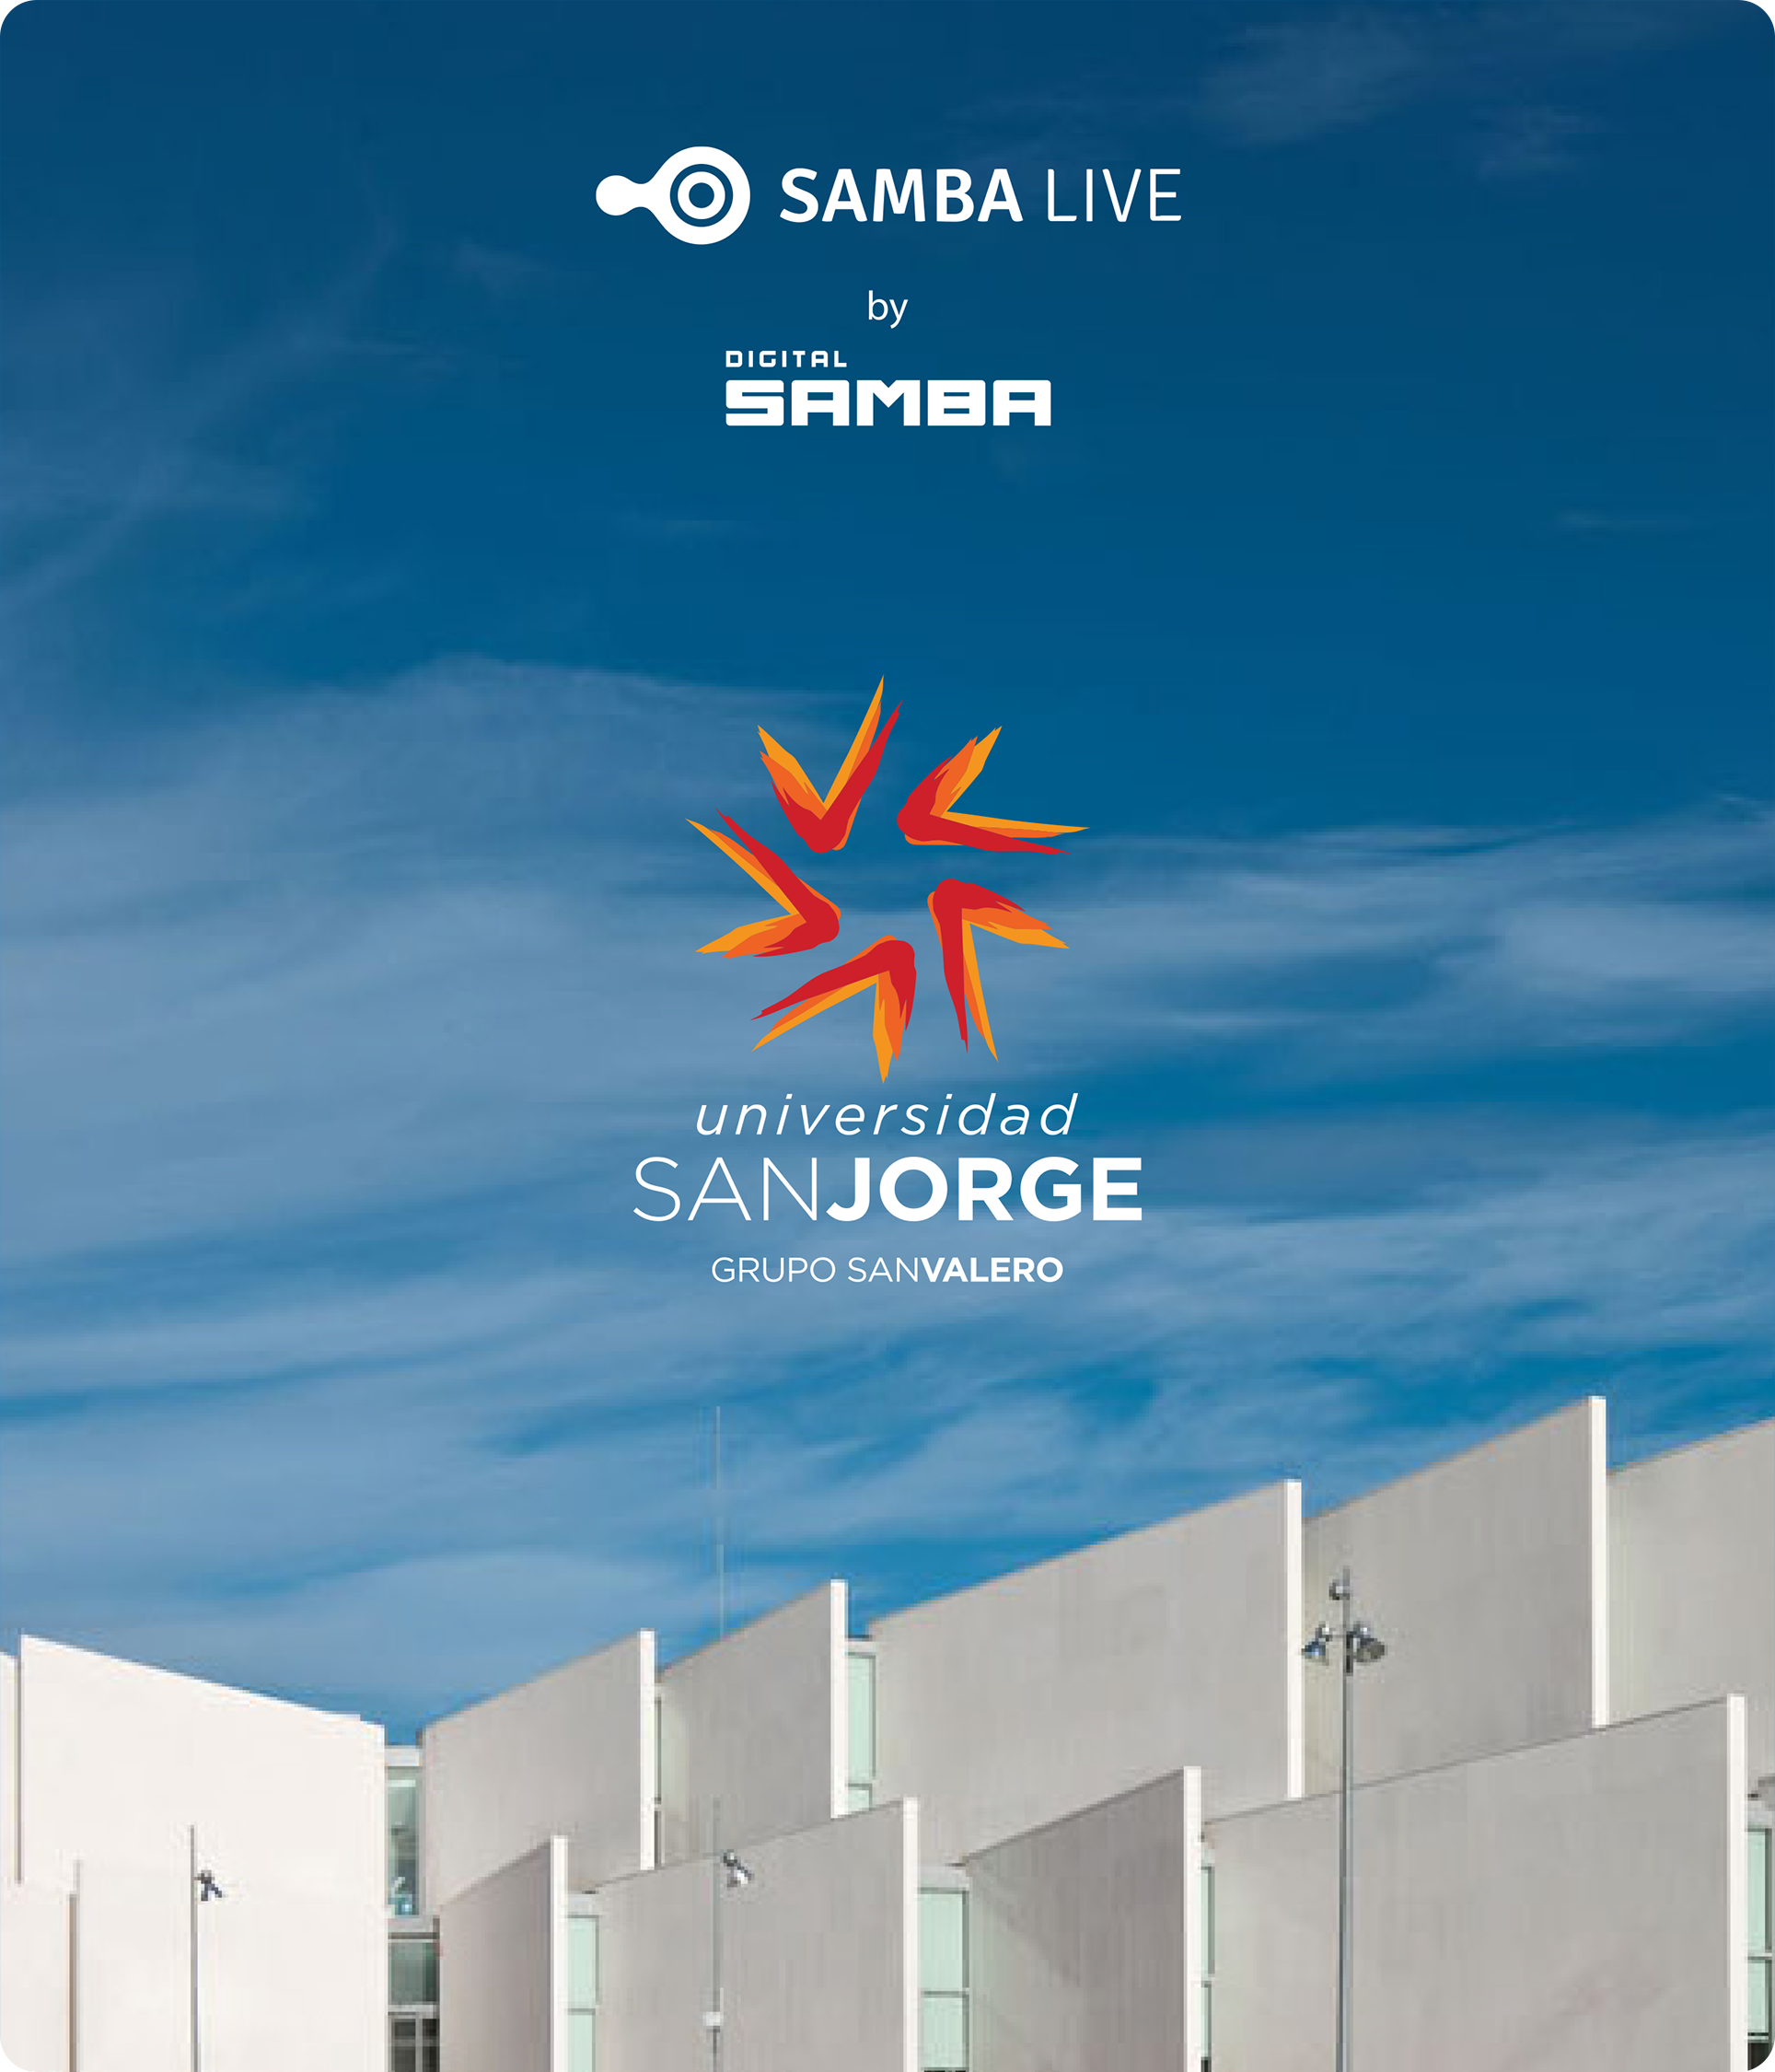 University of San Jorge case study